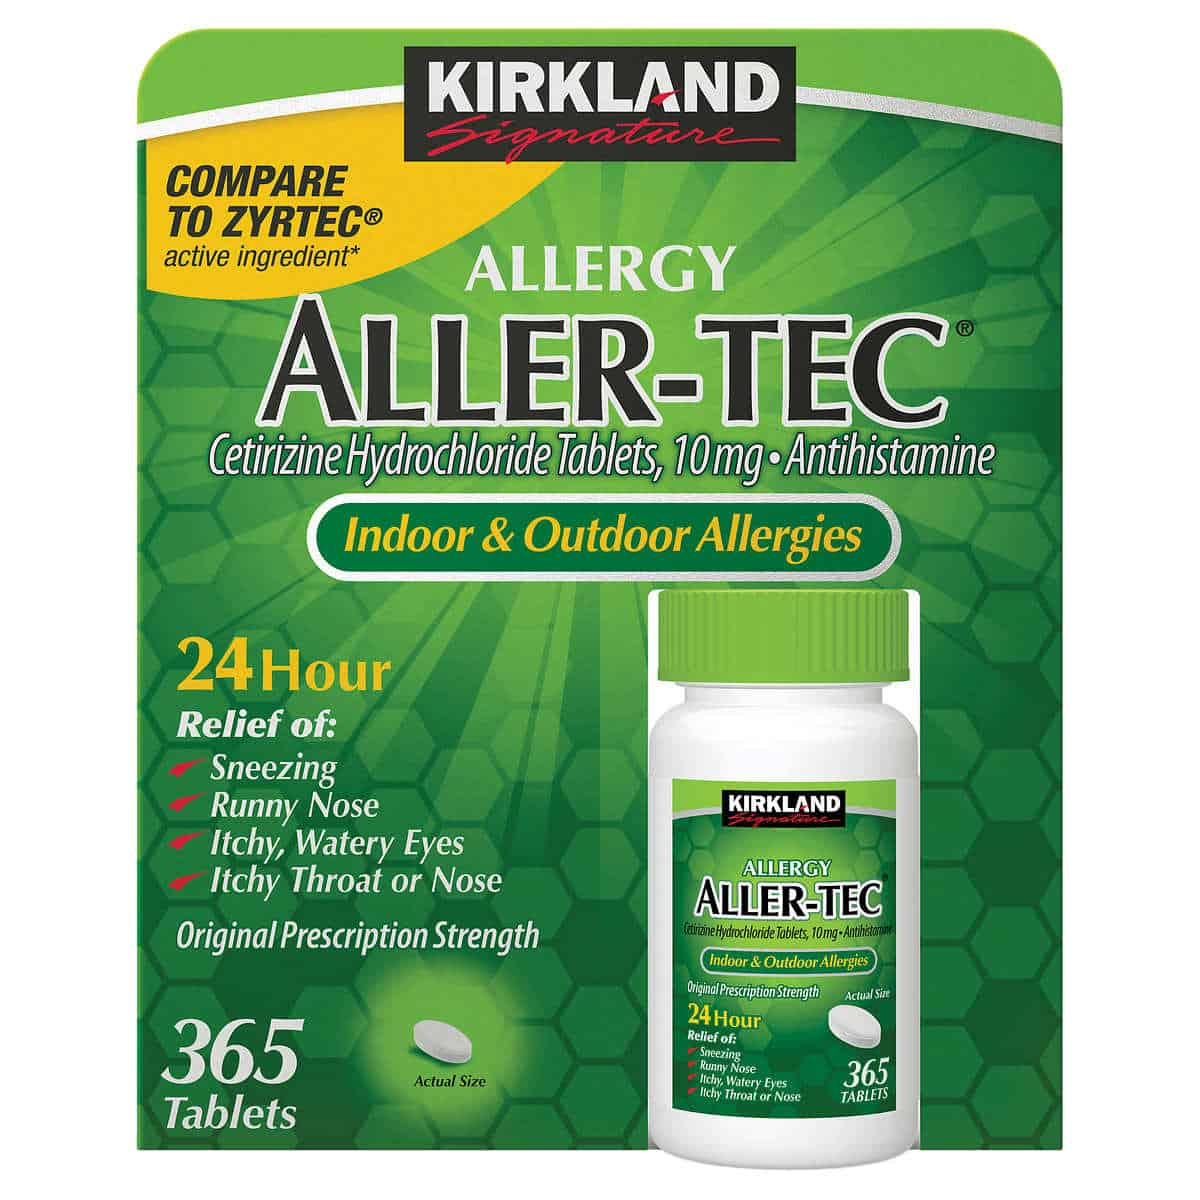 Kirkland Signature Aller-Tec, 365 Tablets only $13.99